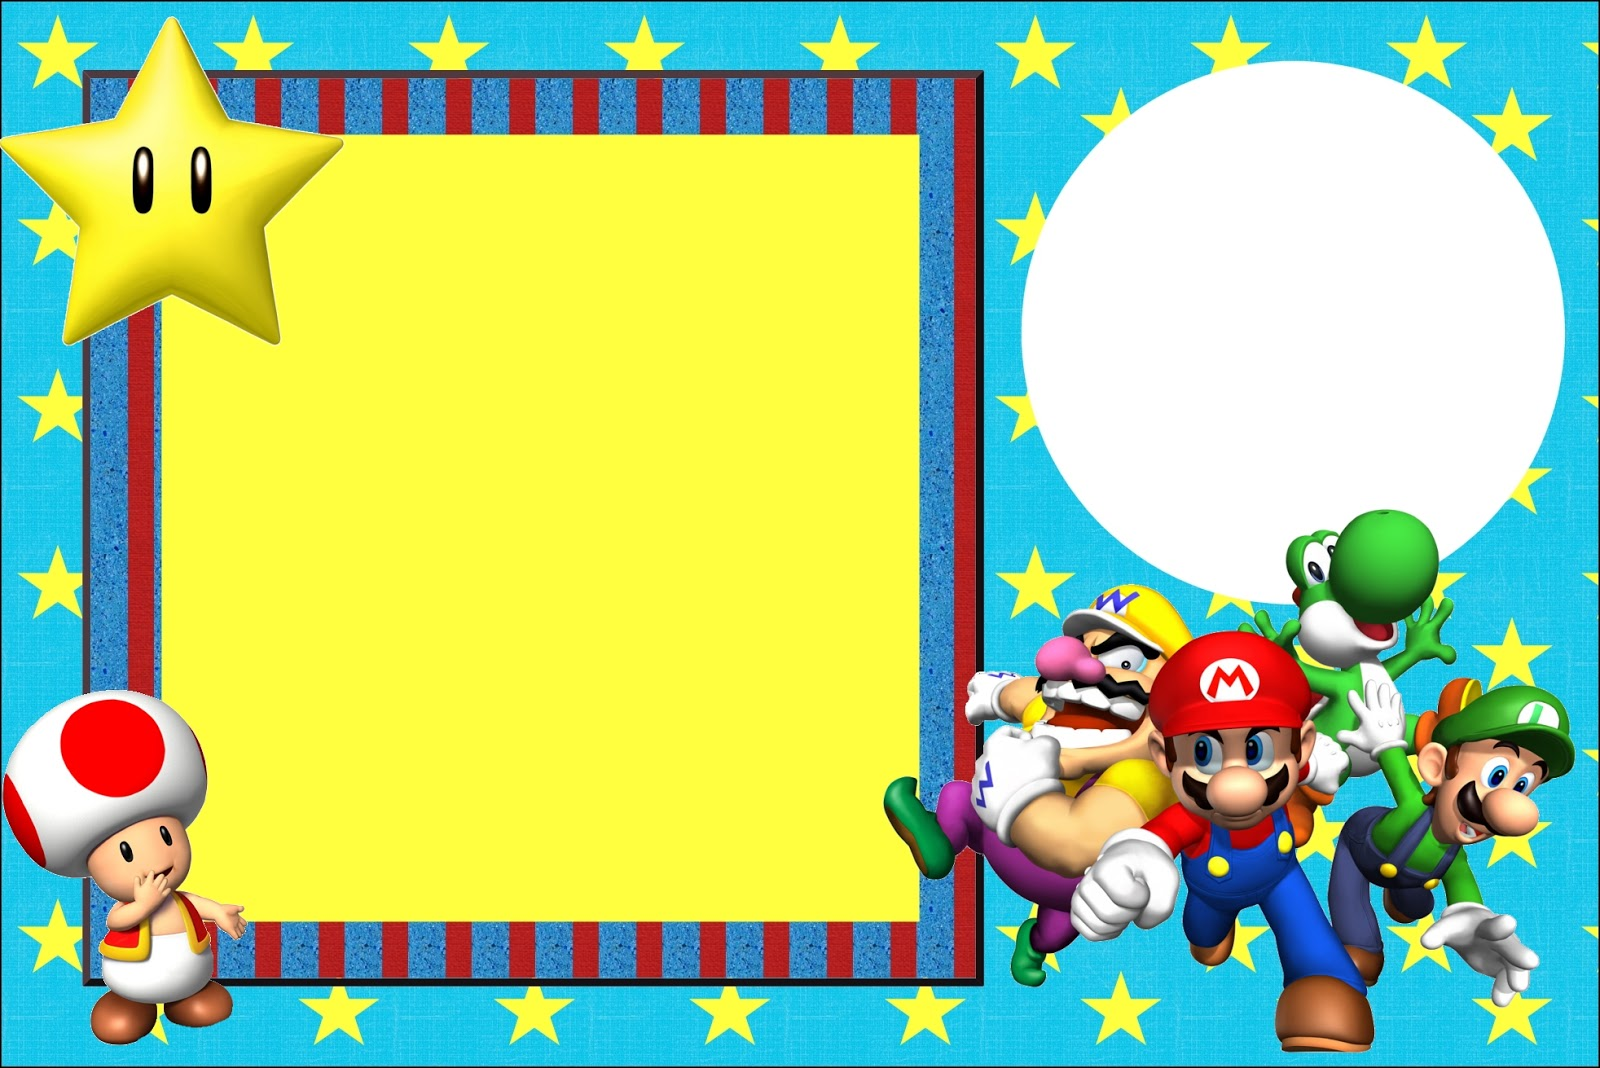 Super Mario Bros Free Printable Invitations Oh My Fiesta in english